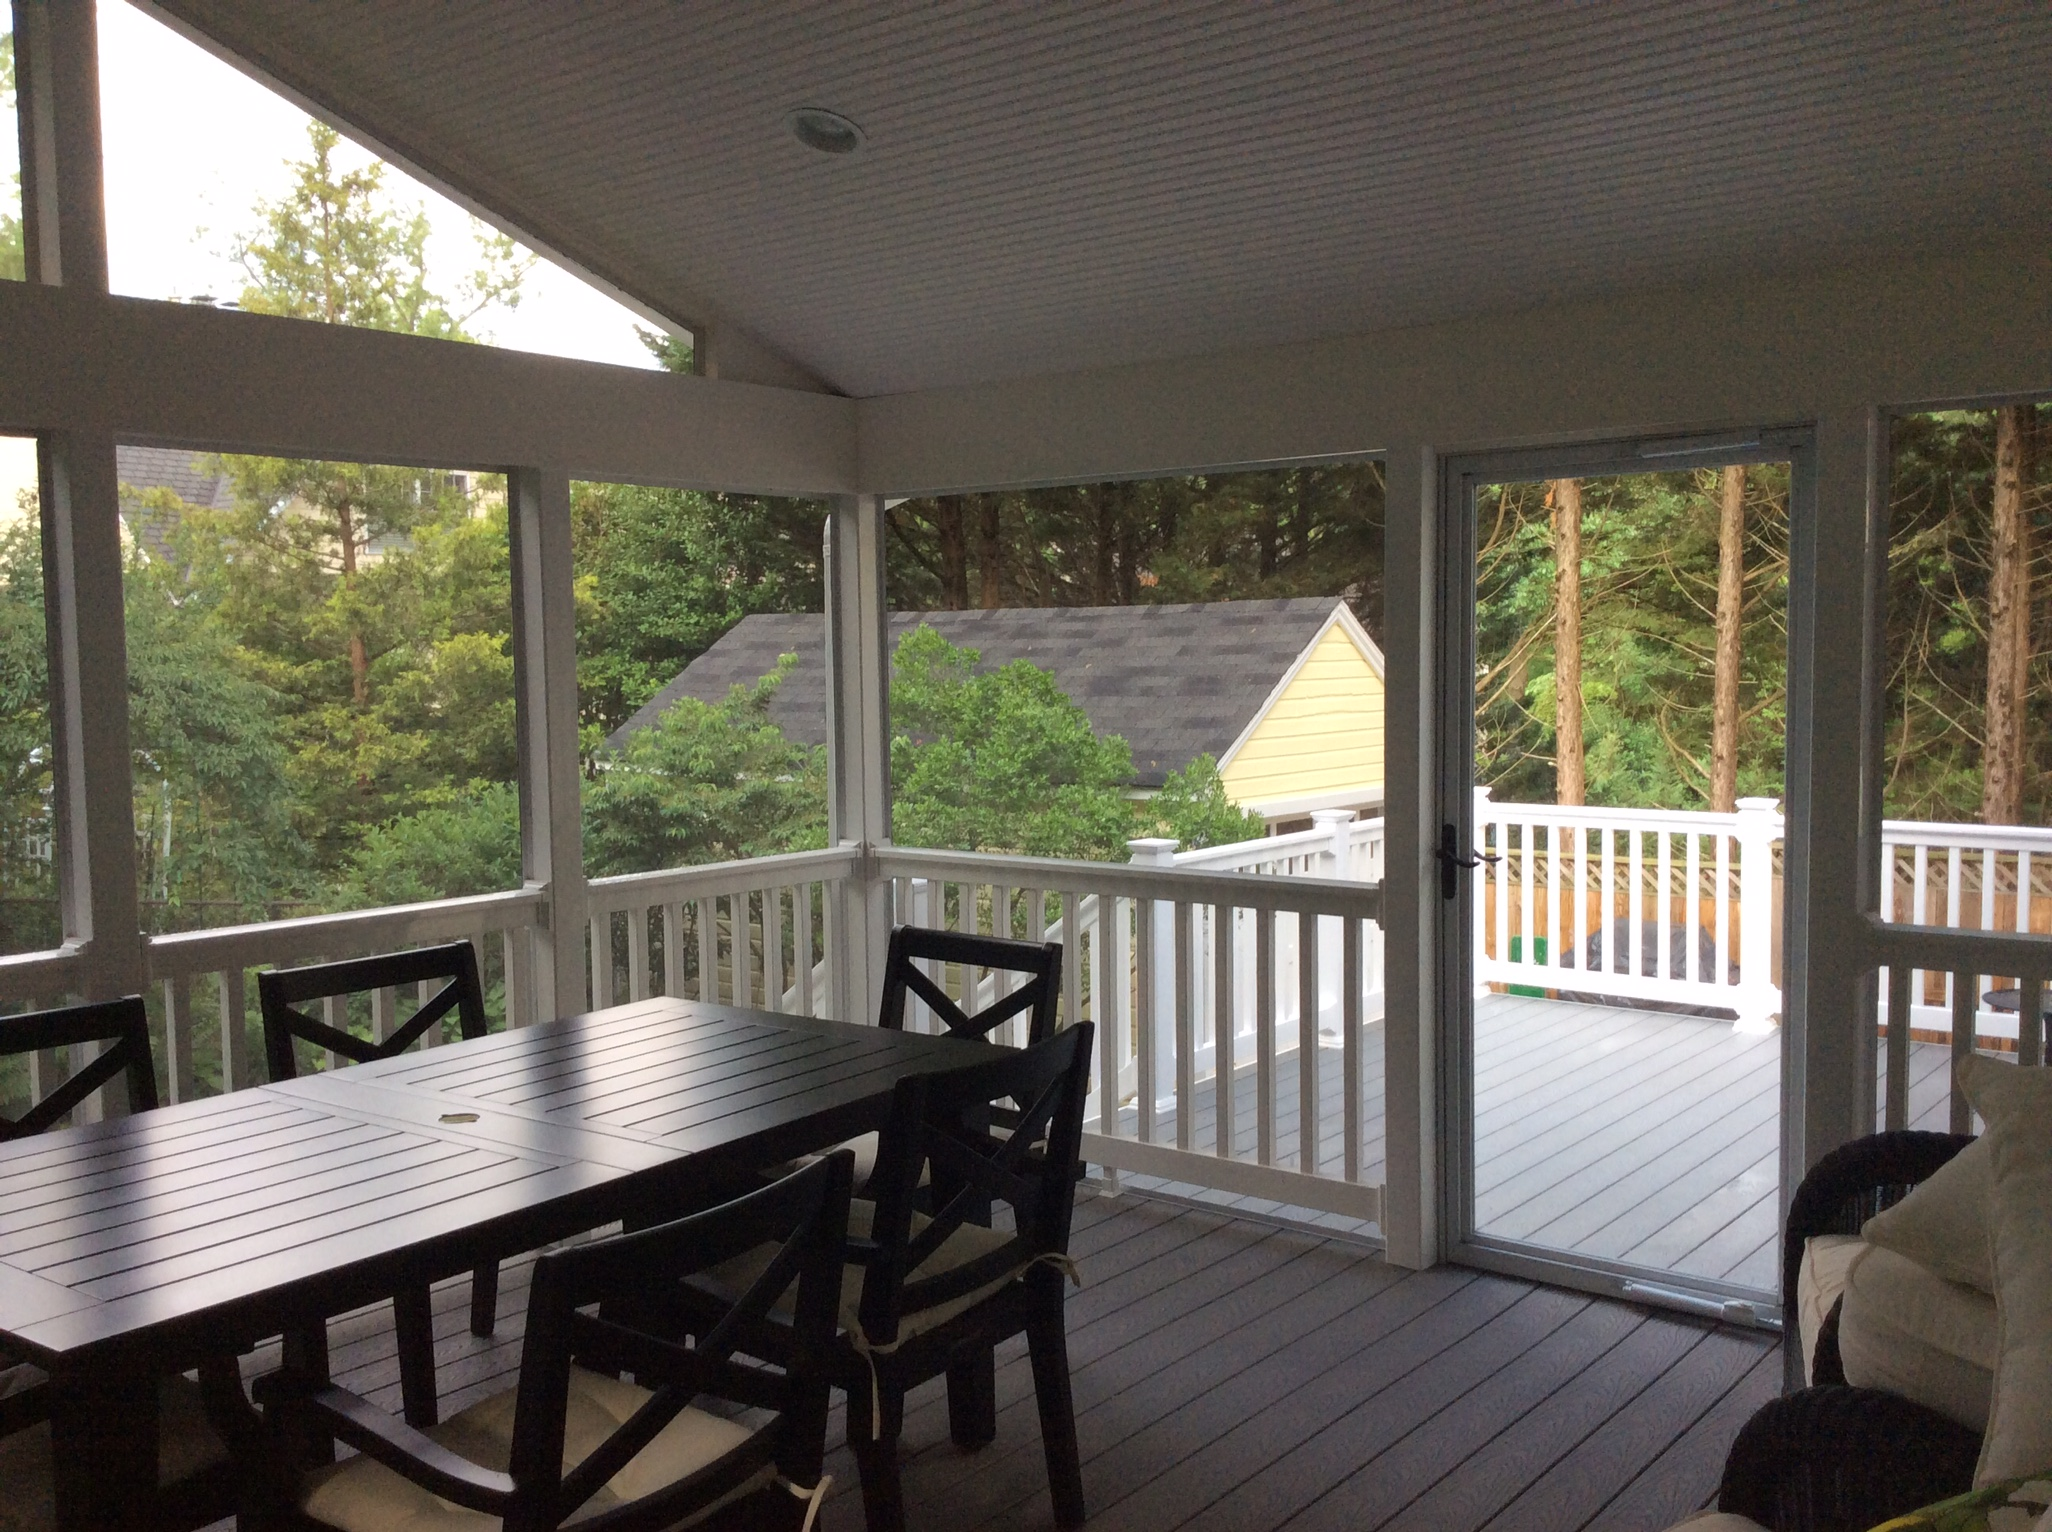 Genial Bethesda MD Deck And Screened Porch Combinations